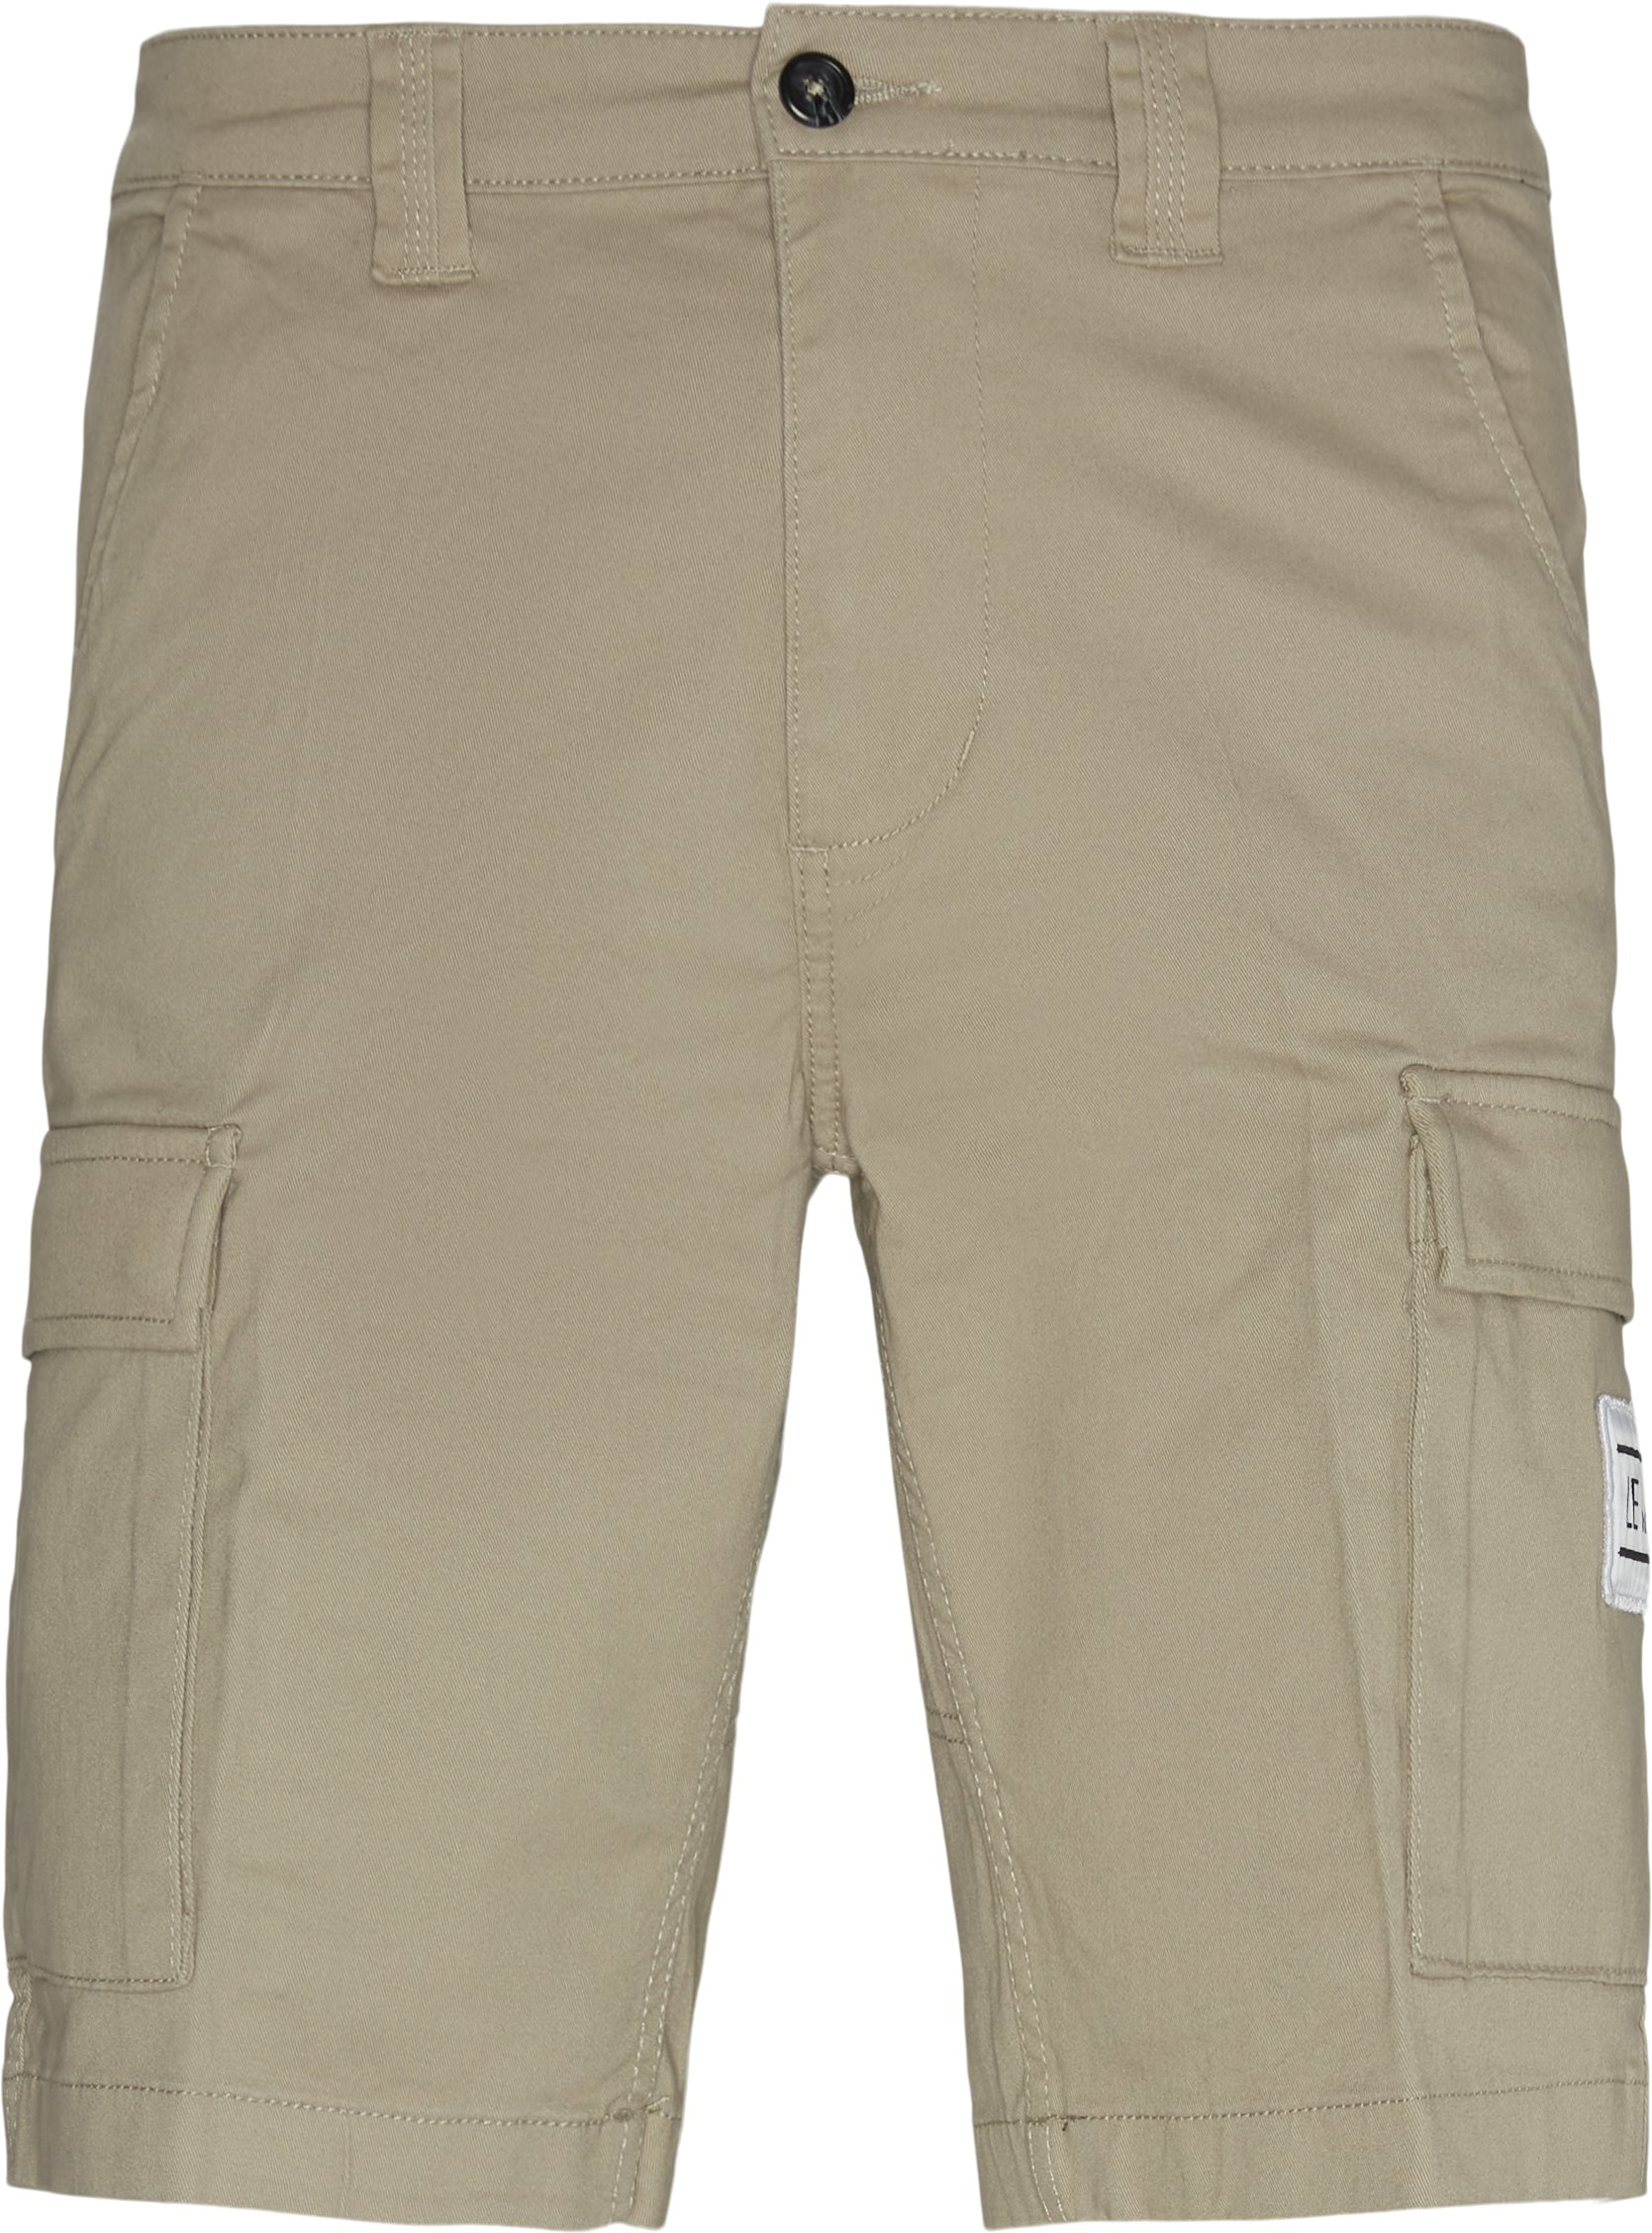 Cedric Shorts - Shorts - Loose fit - Sand